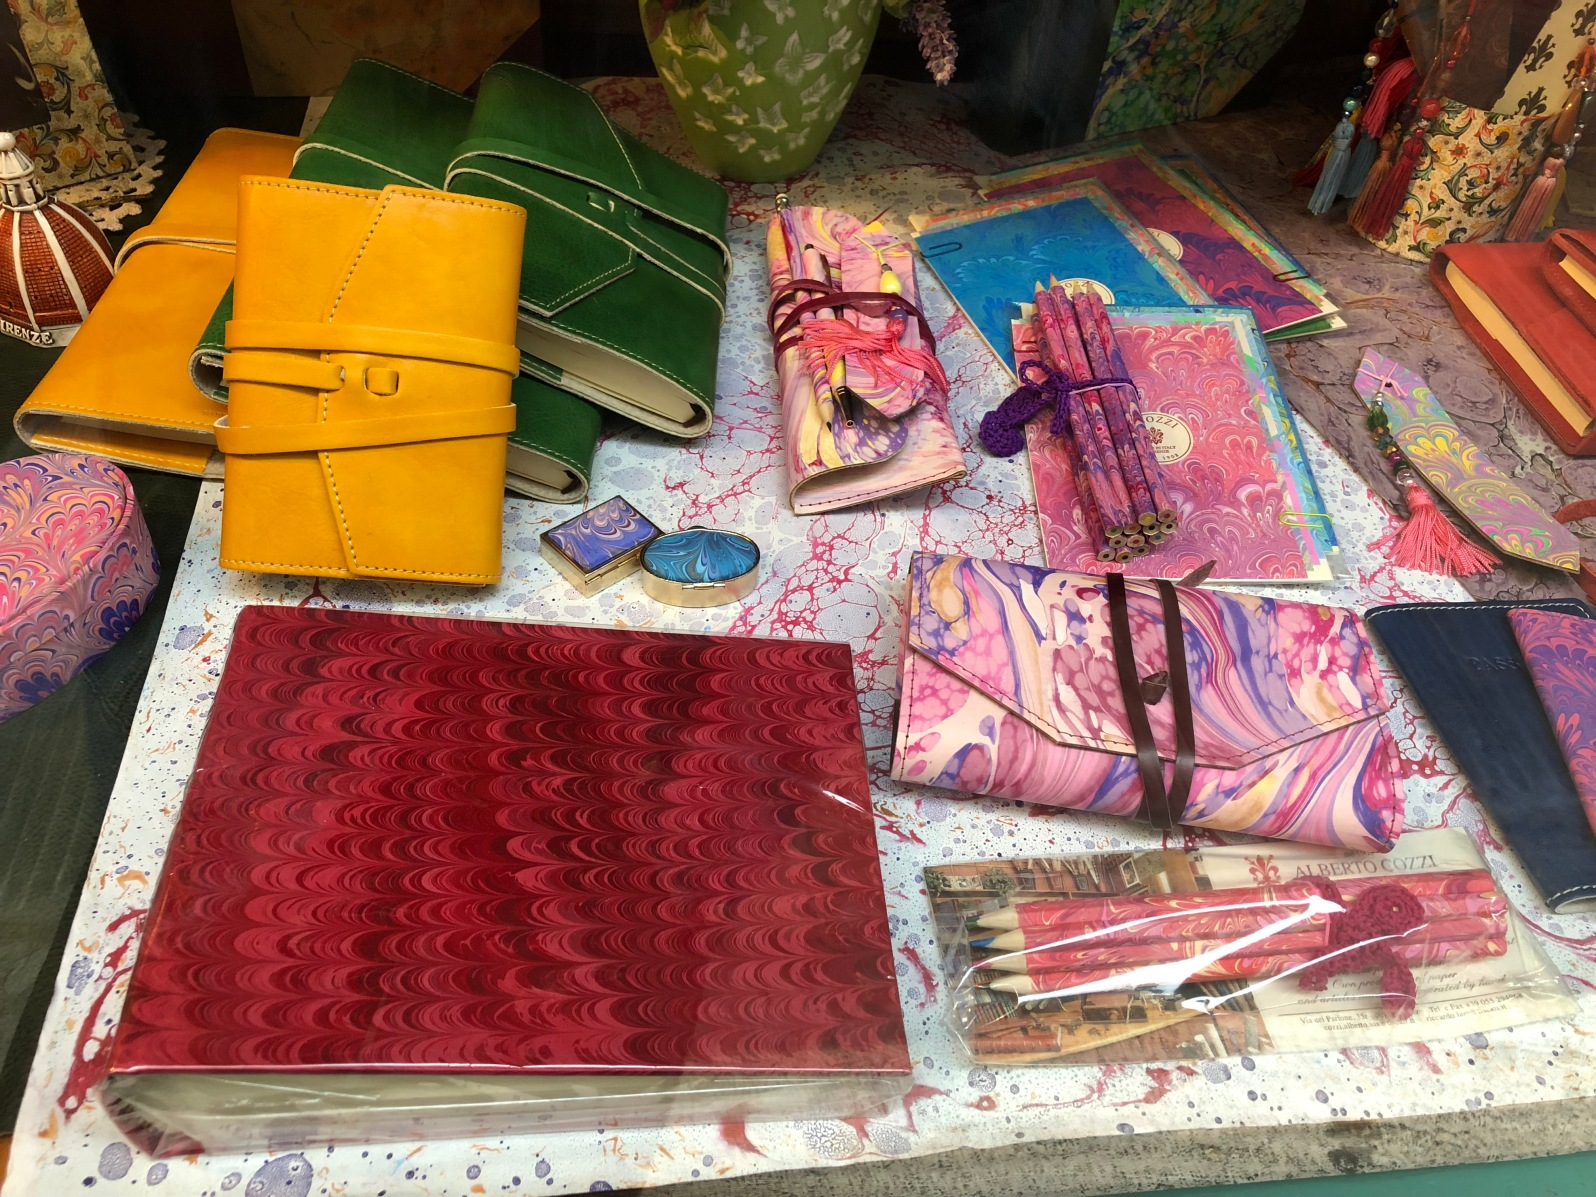 Example of some marbled and bound goods